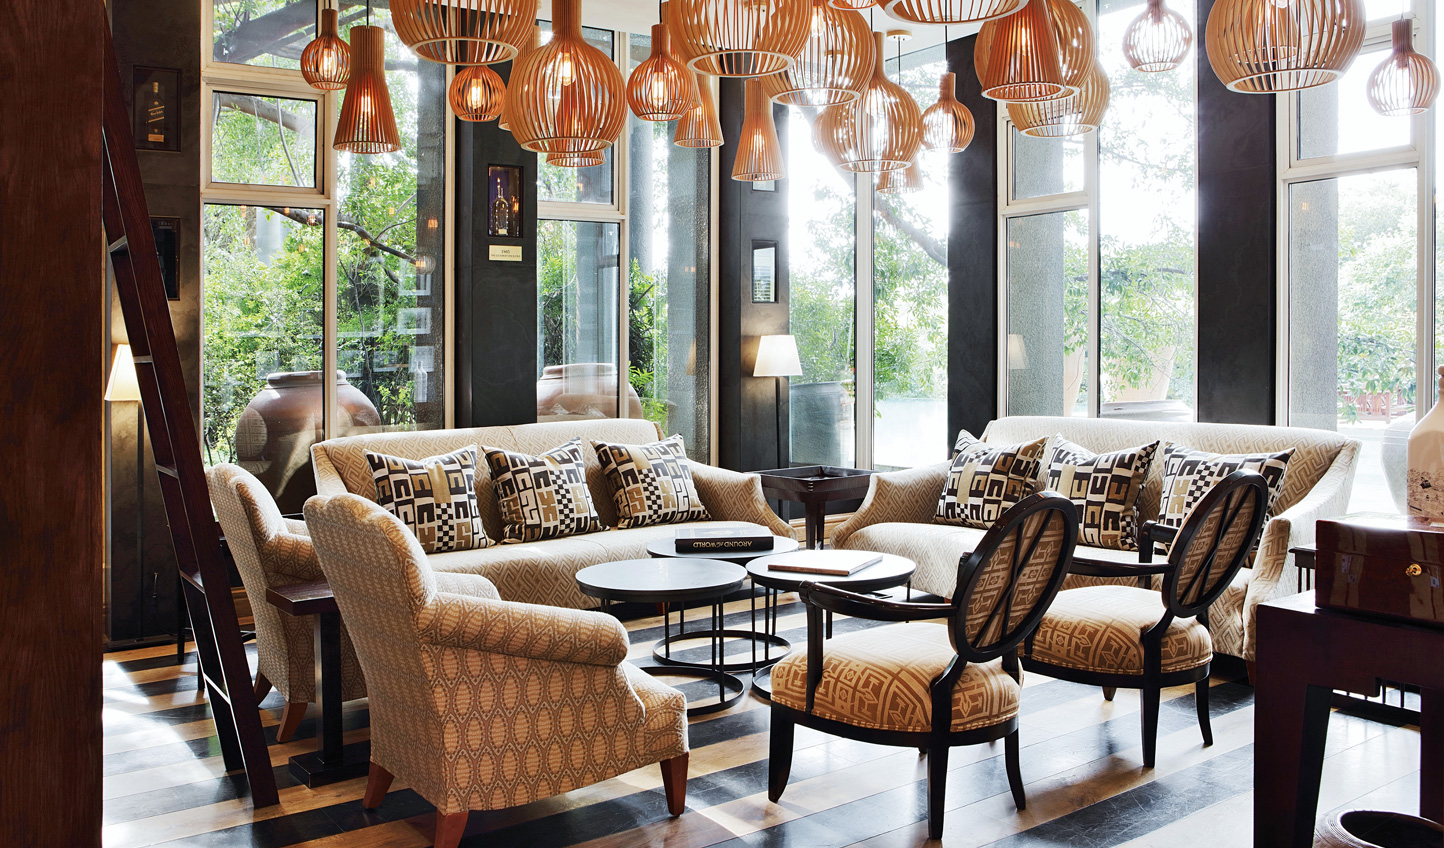 Head into Johannesburg for a stylish stay at The Saxon